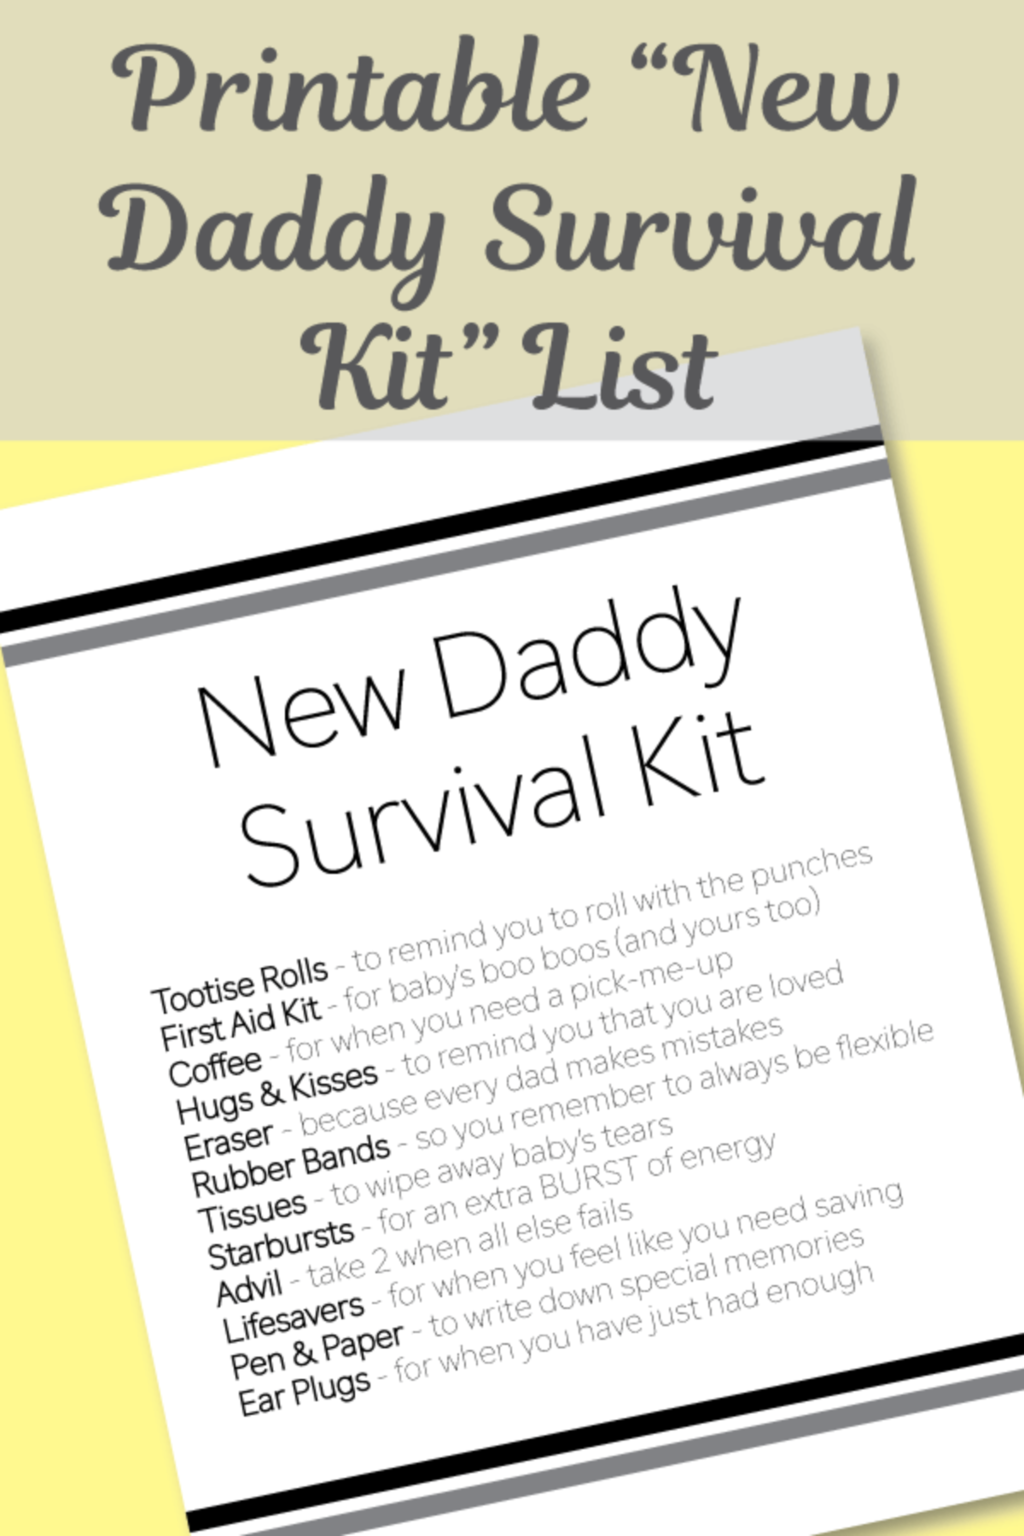 Free Printable New Daddy Survival Kit List In 2020 Daddy Survival Kits Baby Shower Dad Dad Baby Shower Gift